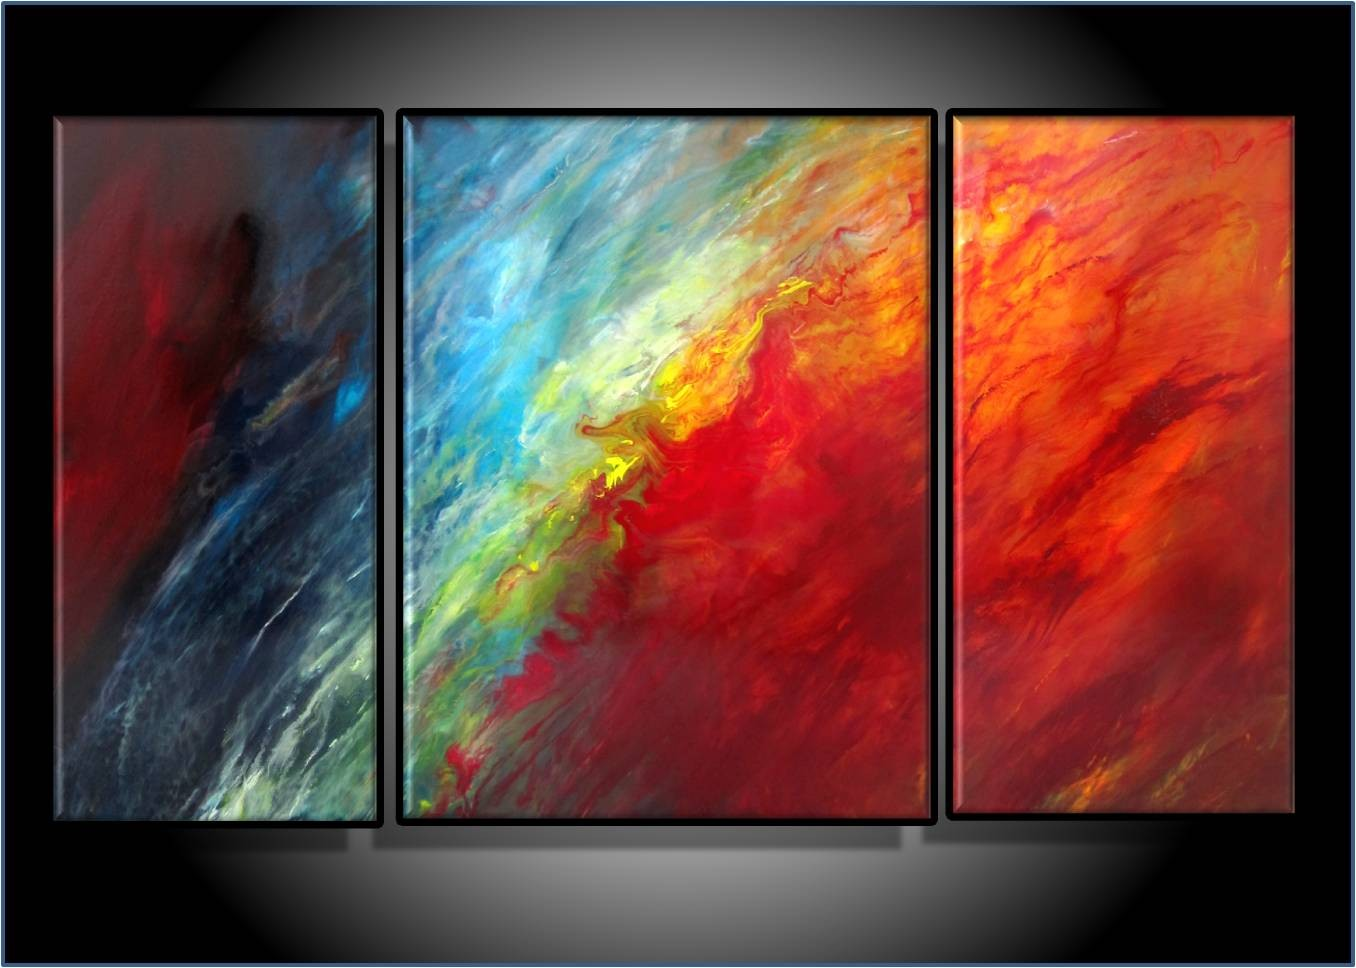 40 Abstract Art Design Ideas - The WoW Style on Modern Painting Ideas  id=67466